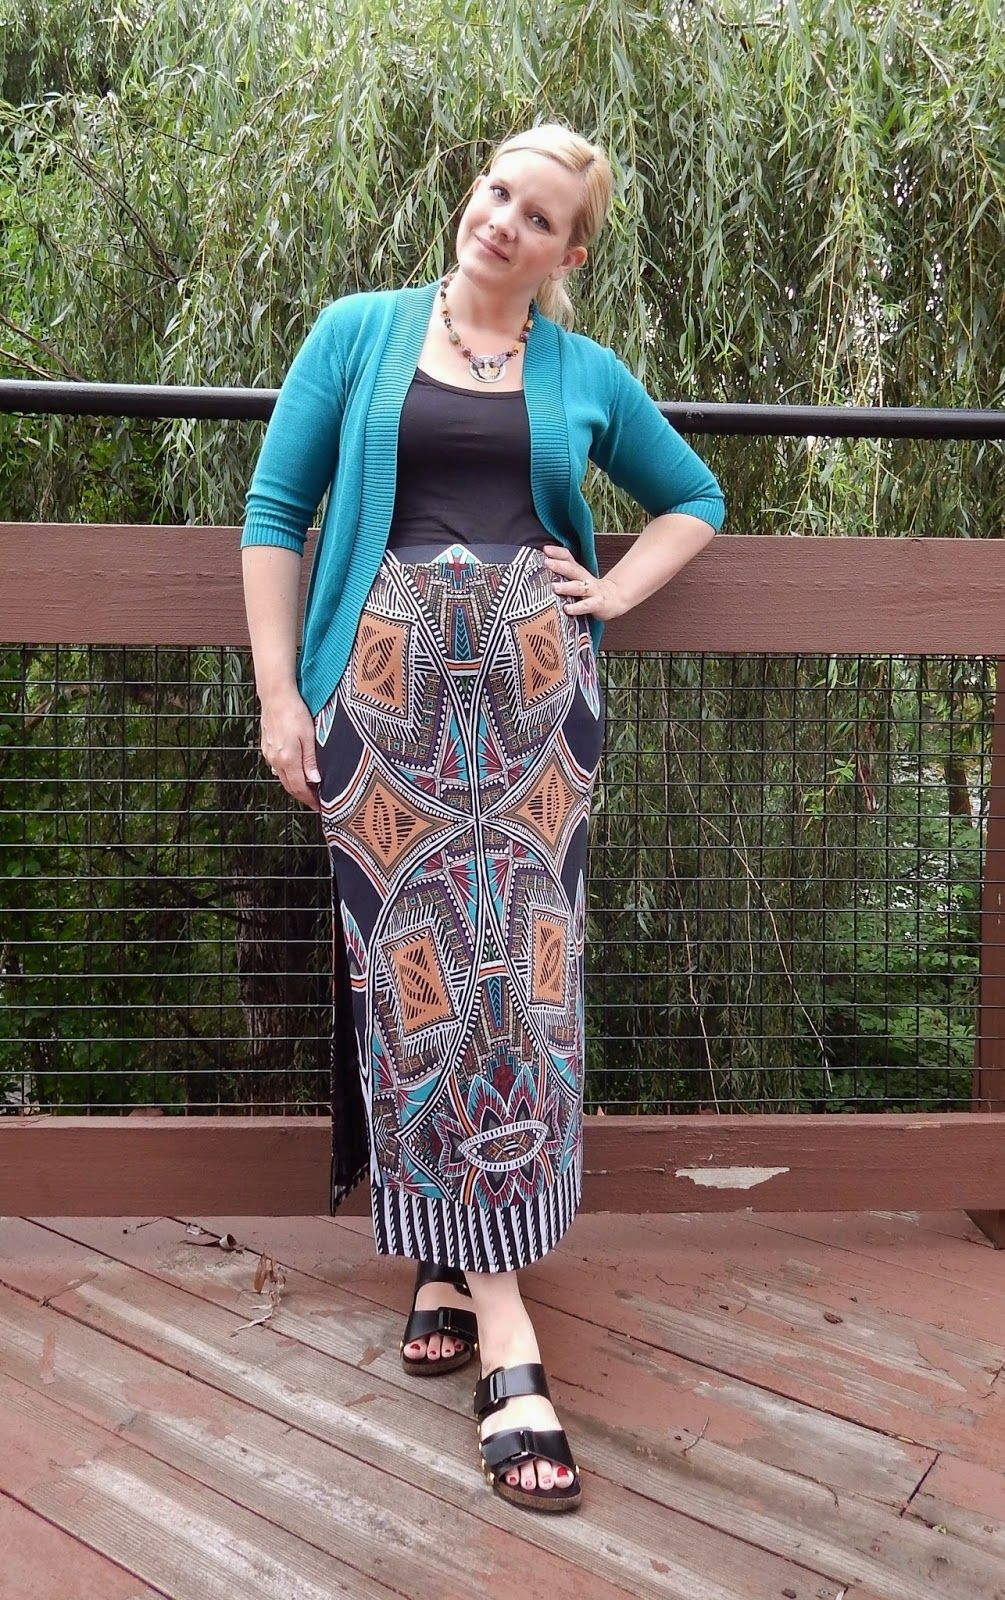 4542e5d2b4419 The Peacock Fairy: Where do prints come from? #ootd #wiw #dressingthebump # maternity #anthropologie #moorea #maeve